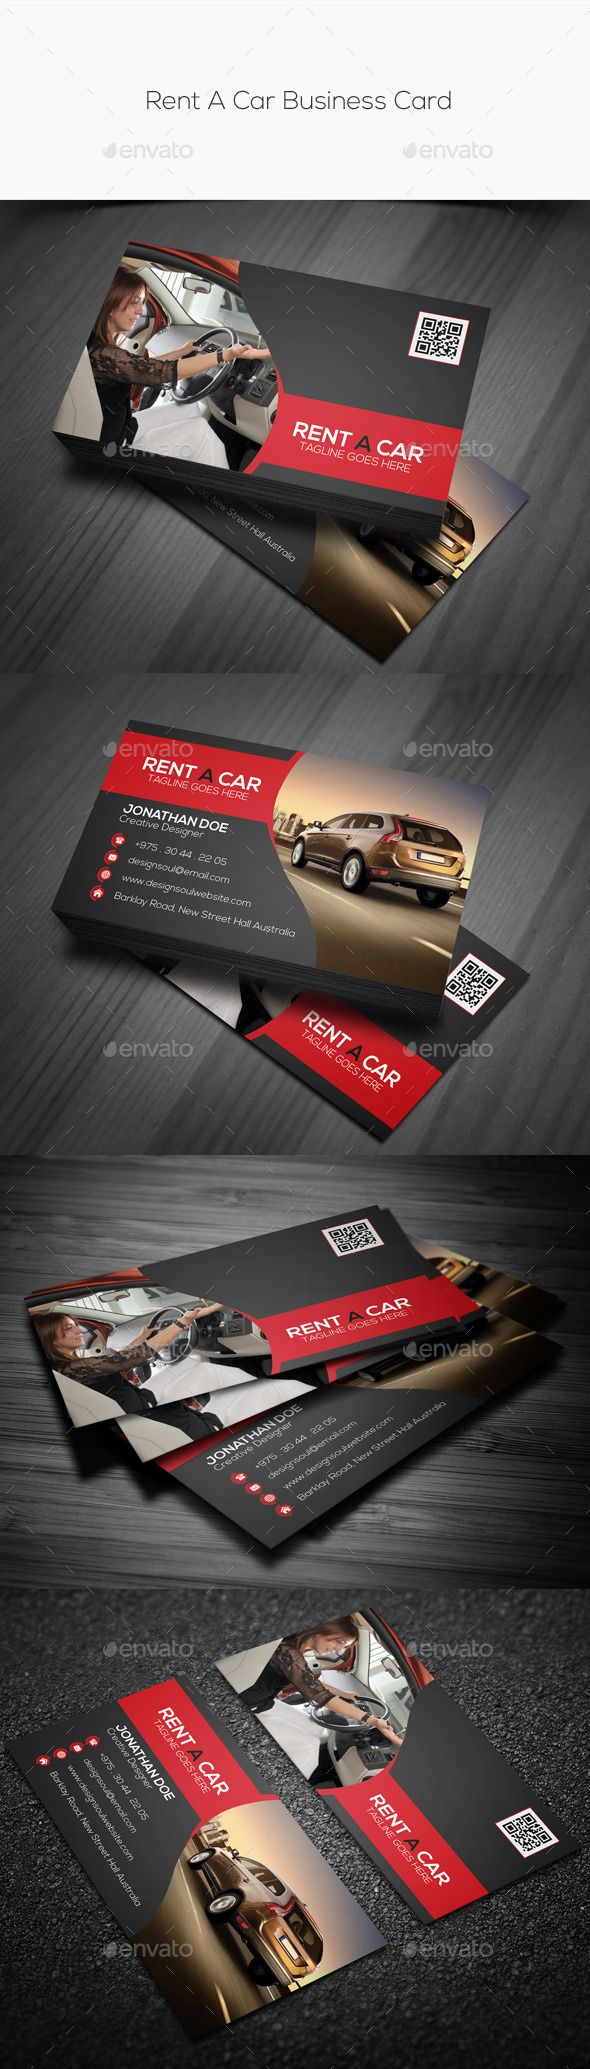 9 best vizitka images on pinterest business card design business rent a car business card by adobe photoshop fully layered psd files easy customizable and editable easy to use your own photossmart object option reheart Choice Image